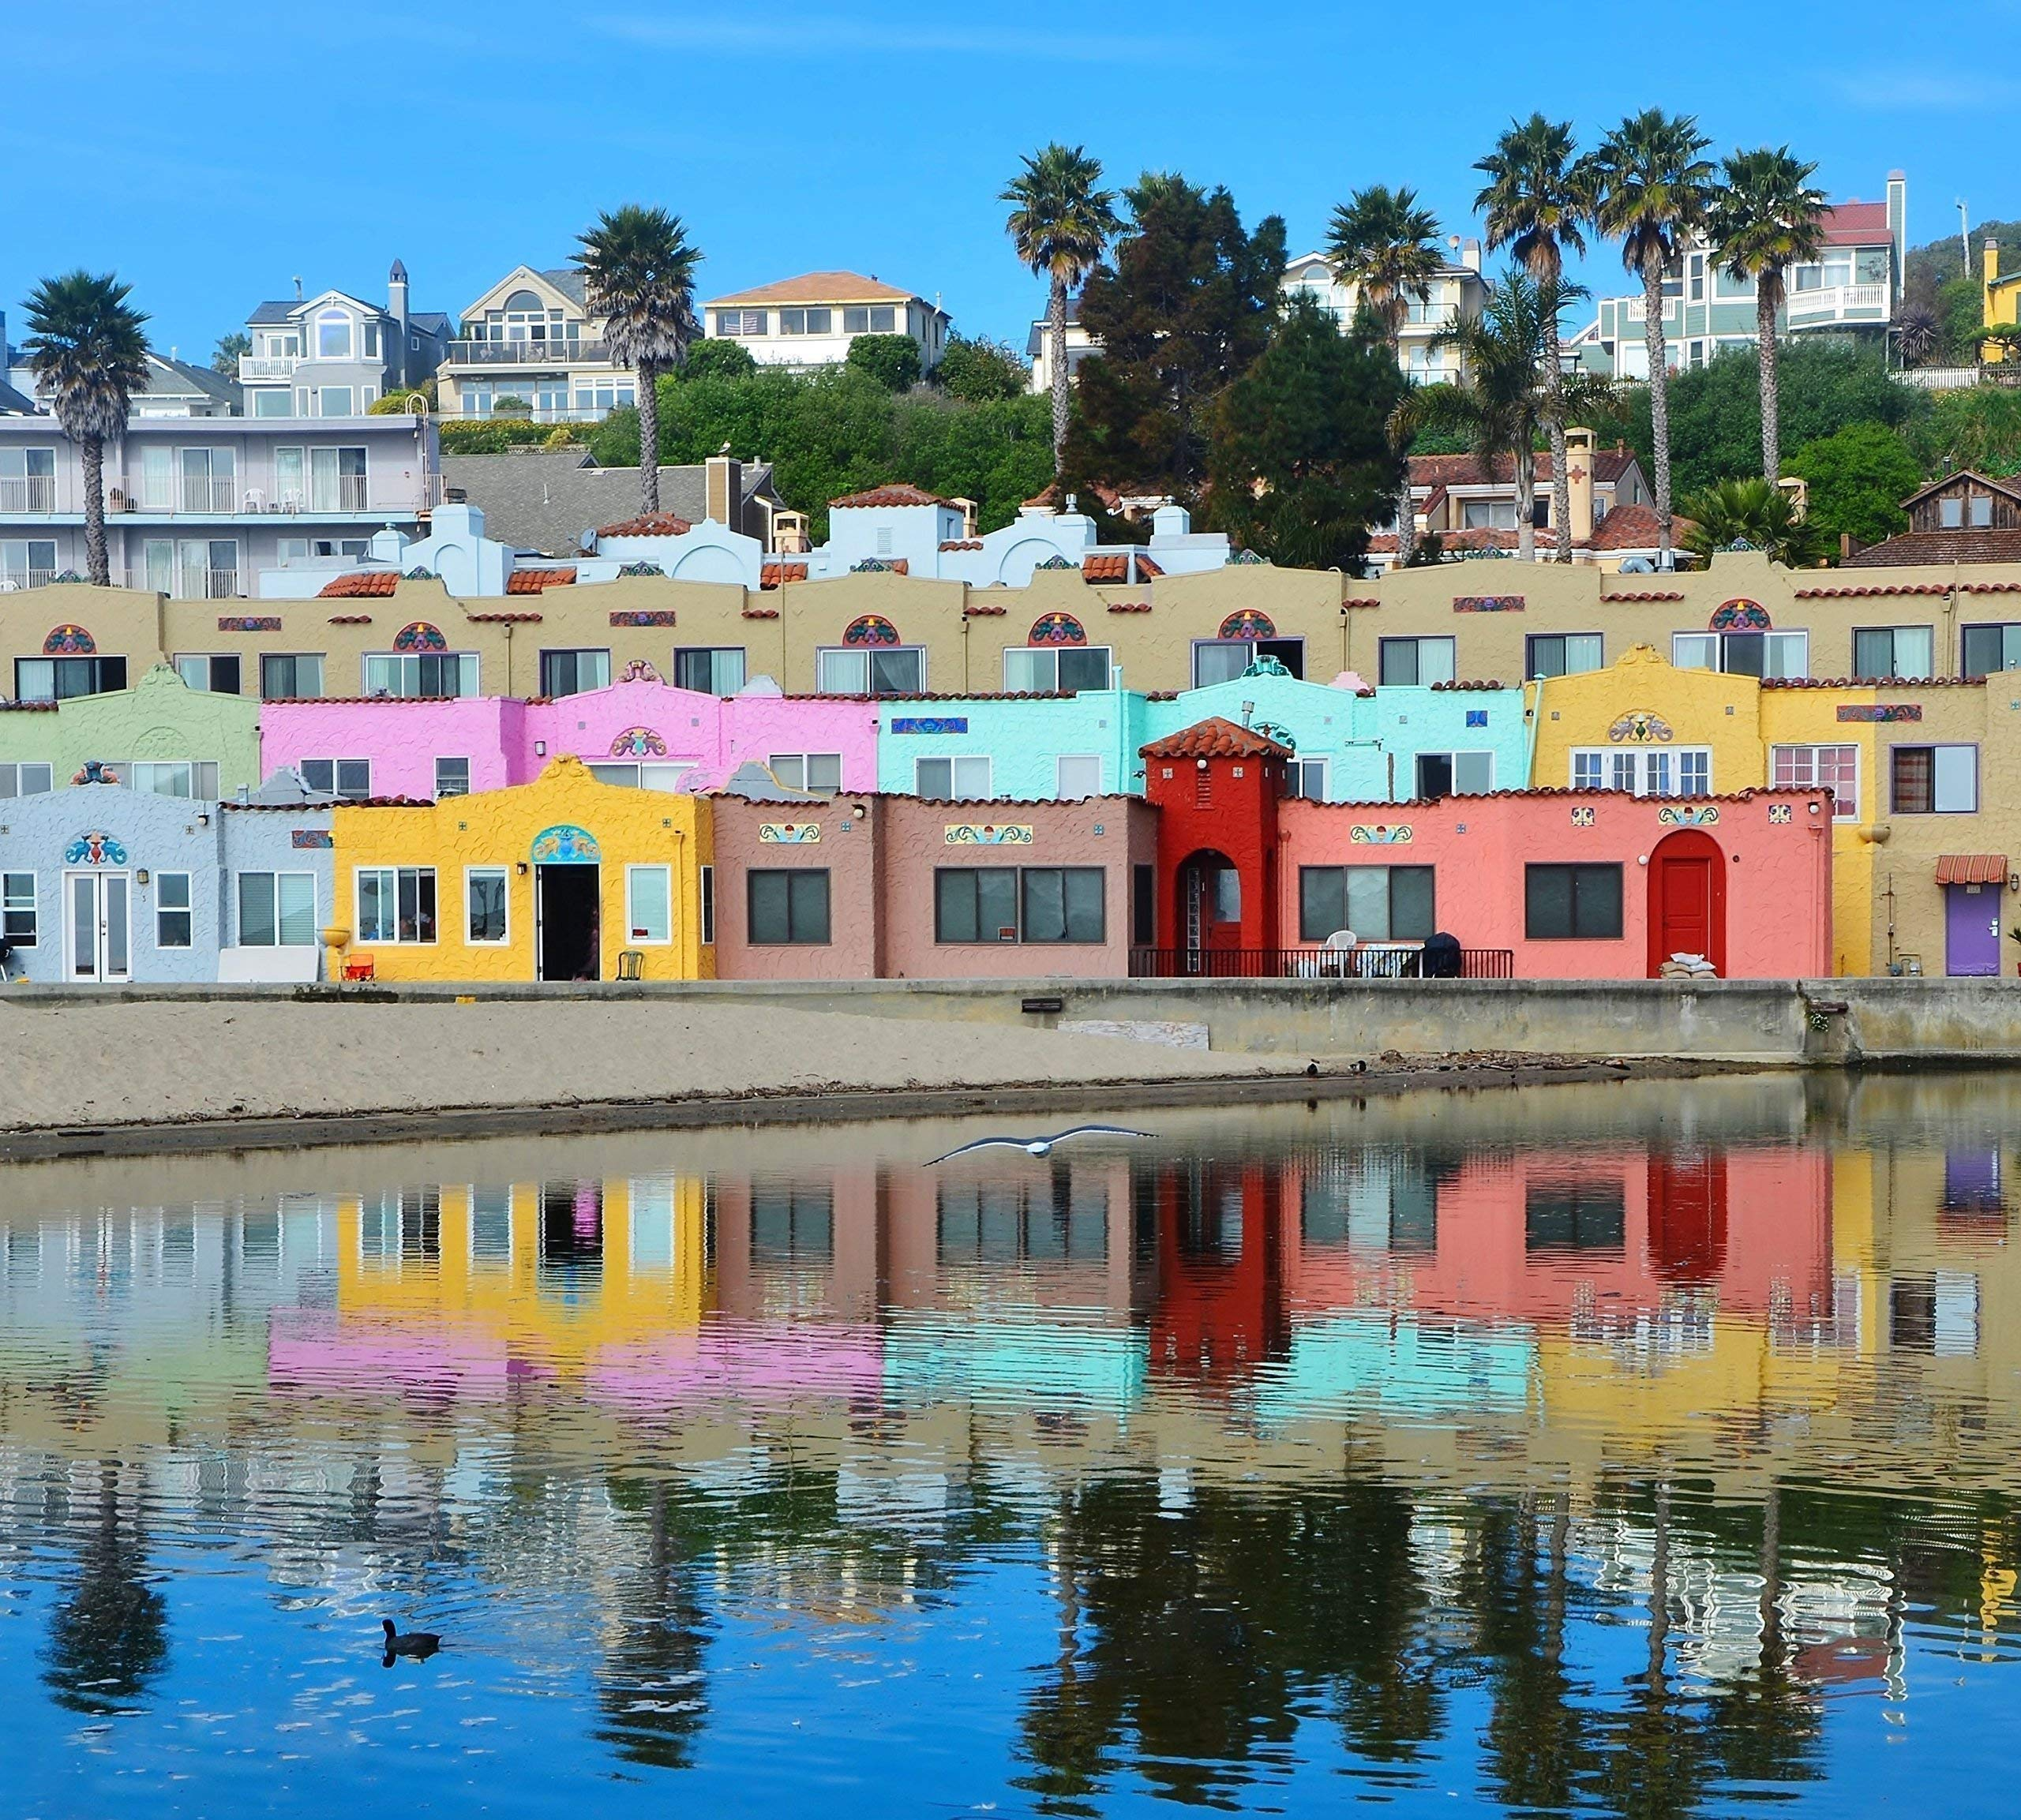 The Colorful Capitola Venetian Hotel